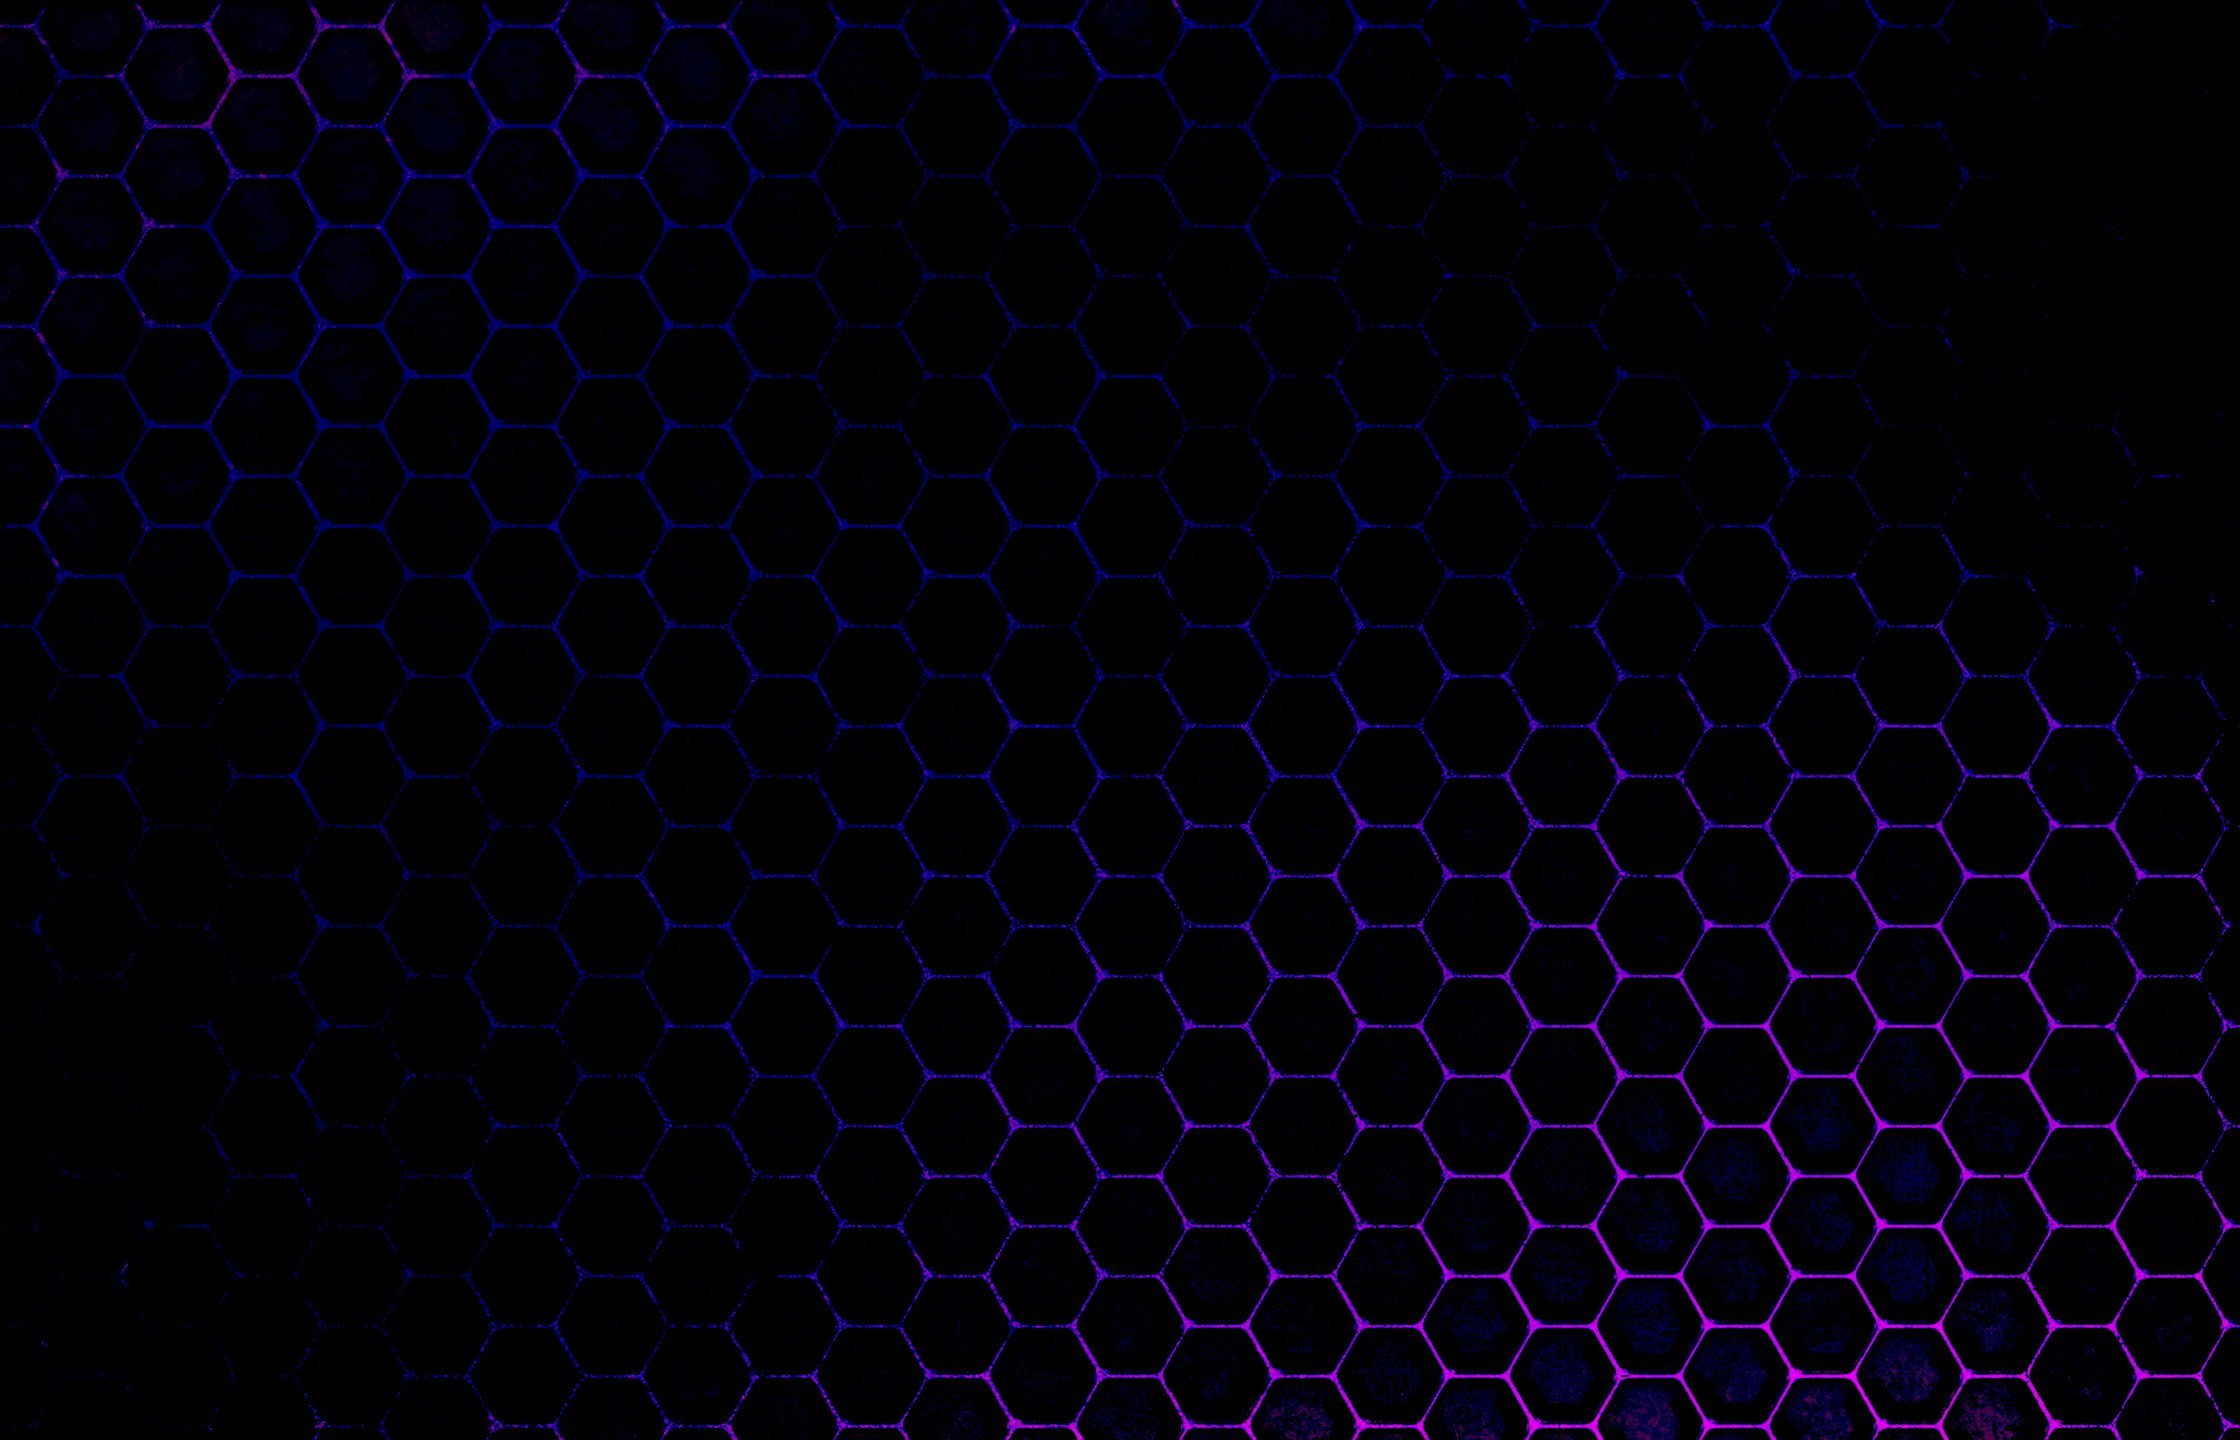 black wallpaper in fhd for free download for android desktop 2240x1440